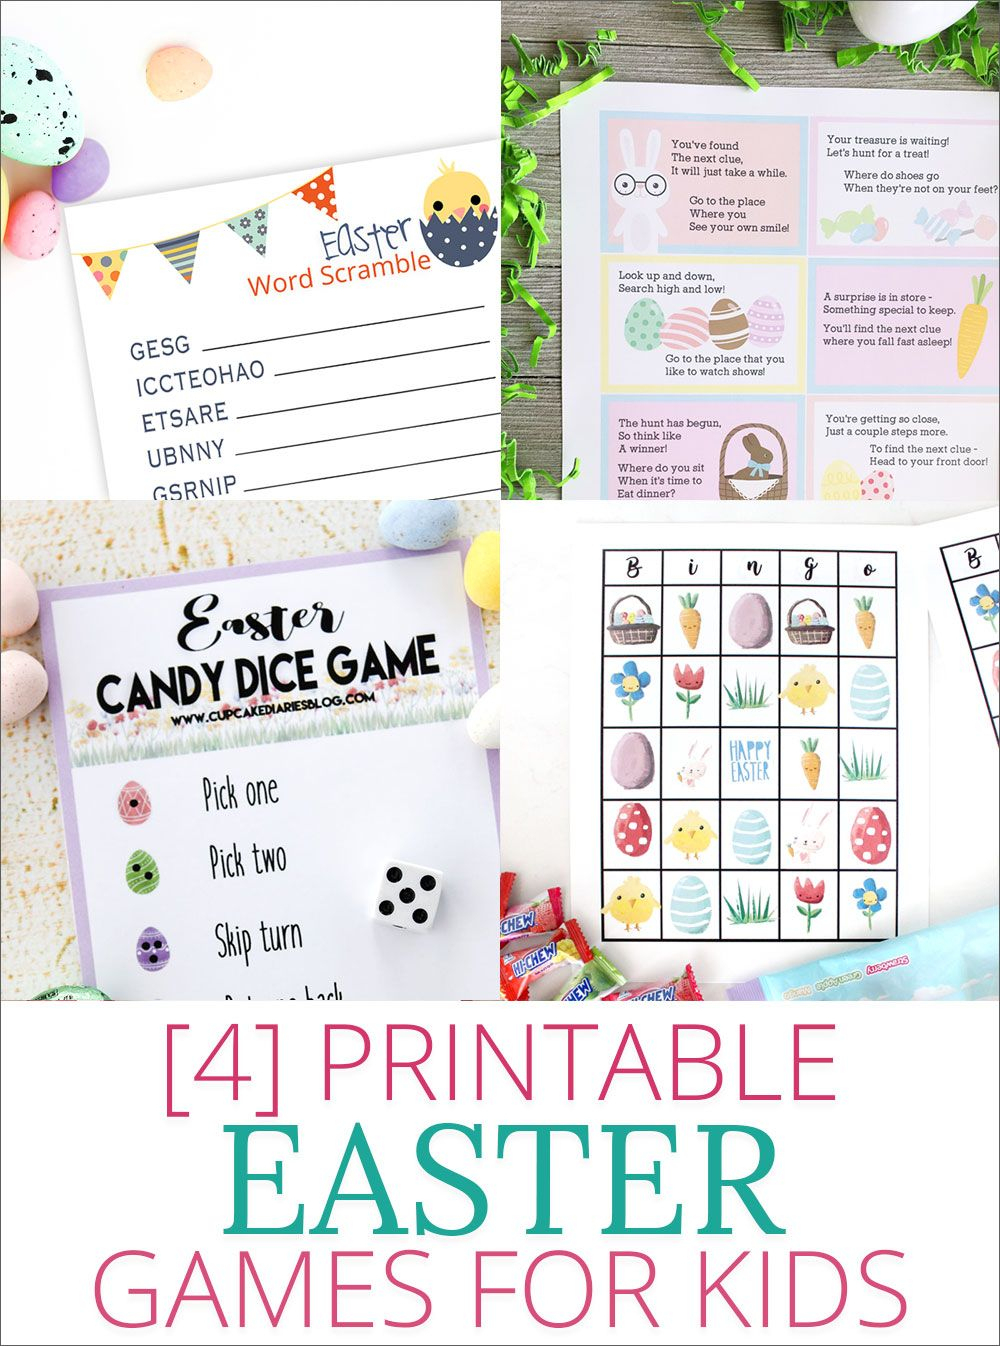 Free Printable Easter Bingo | For The Grandkiddies | Pinterest - Easter Games For Adults Printable Free